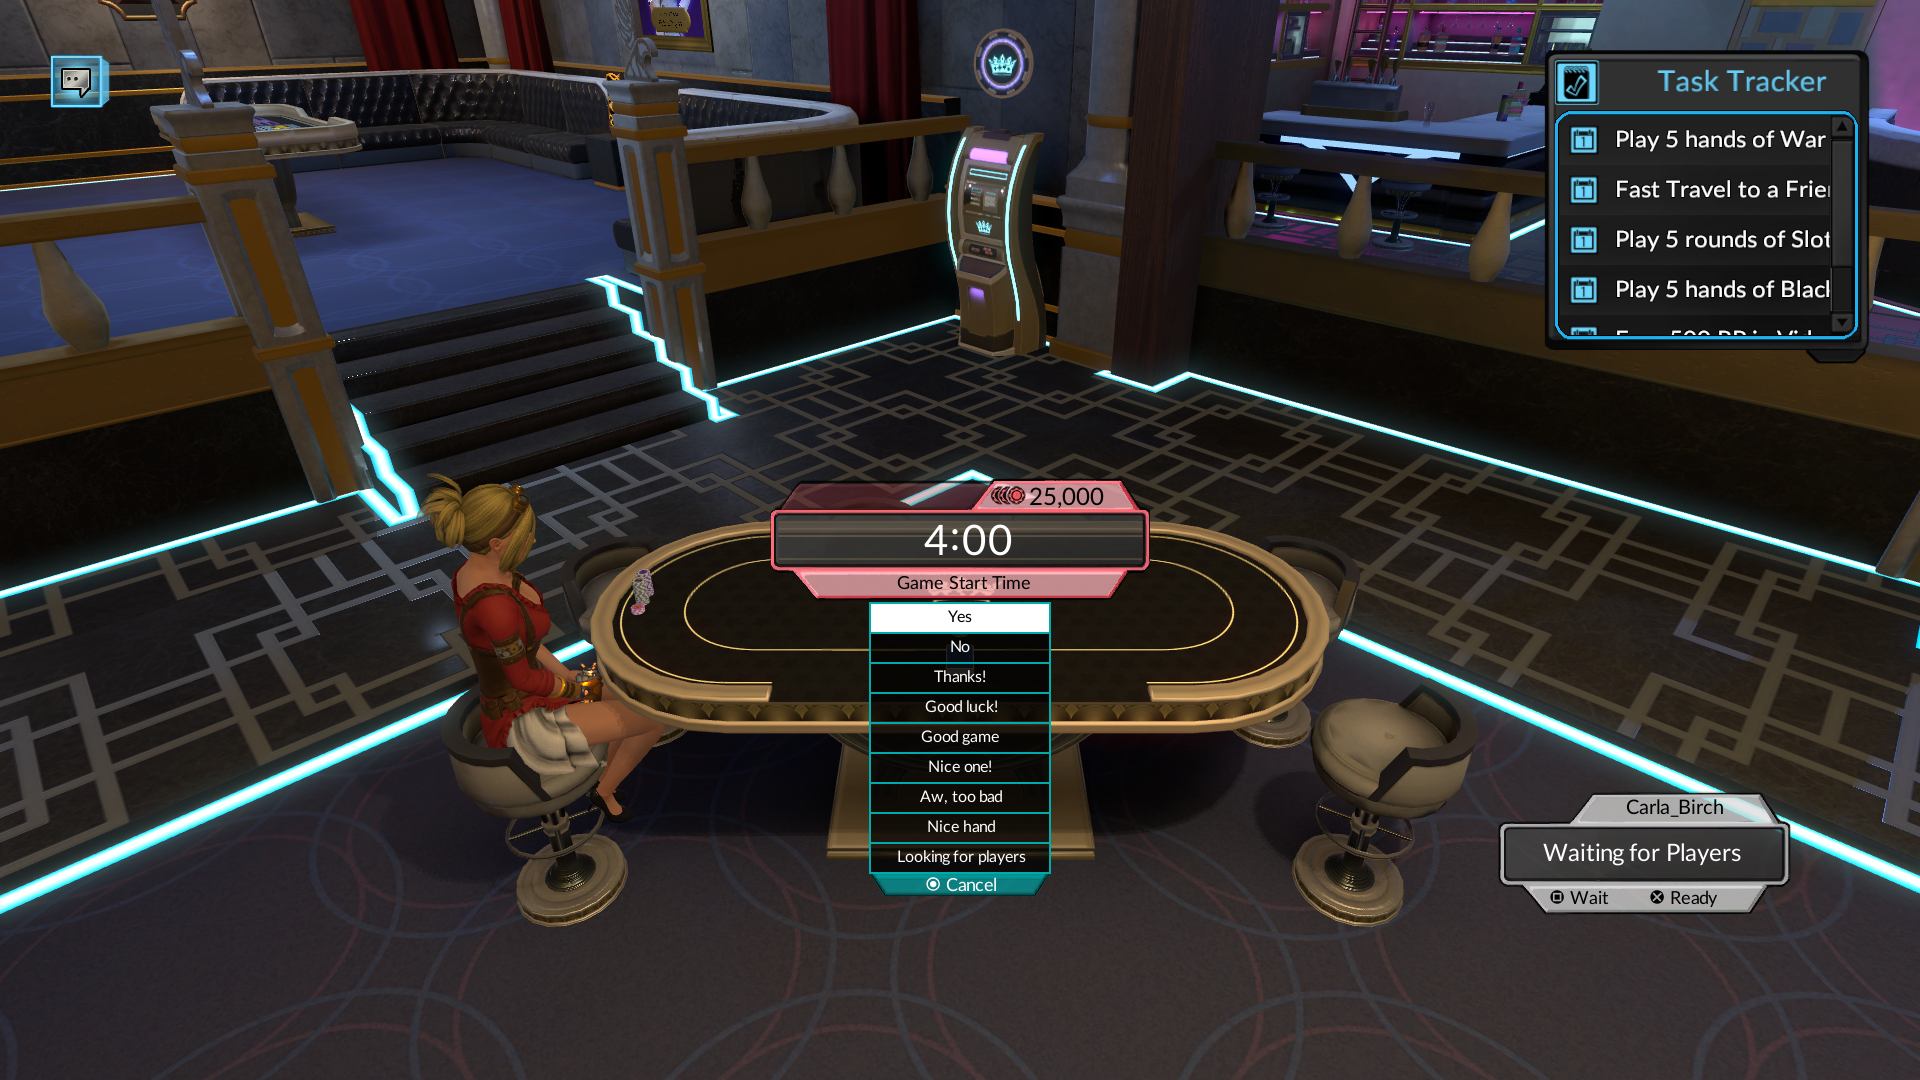 Four Kings Casino & Slots, Feedback/Discussion, C.Birch, Sep 20, 2015, 9:04 AM, YourPSHome.net, png, 260430_2015-09-20_00003.png